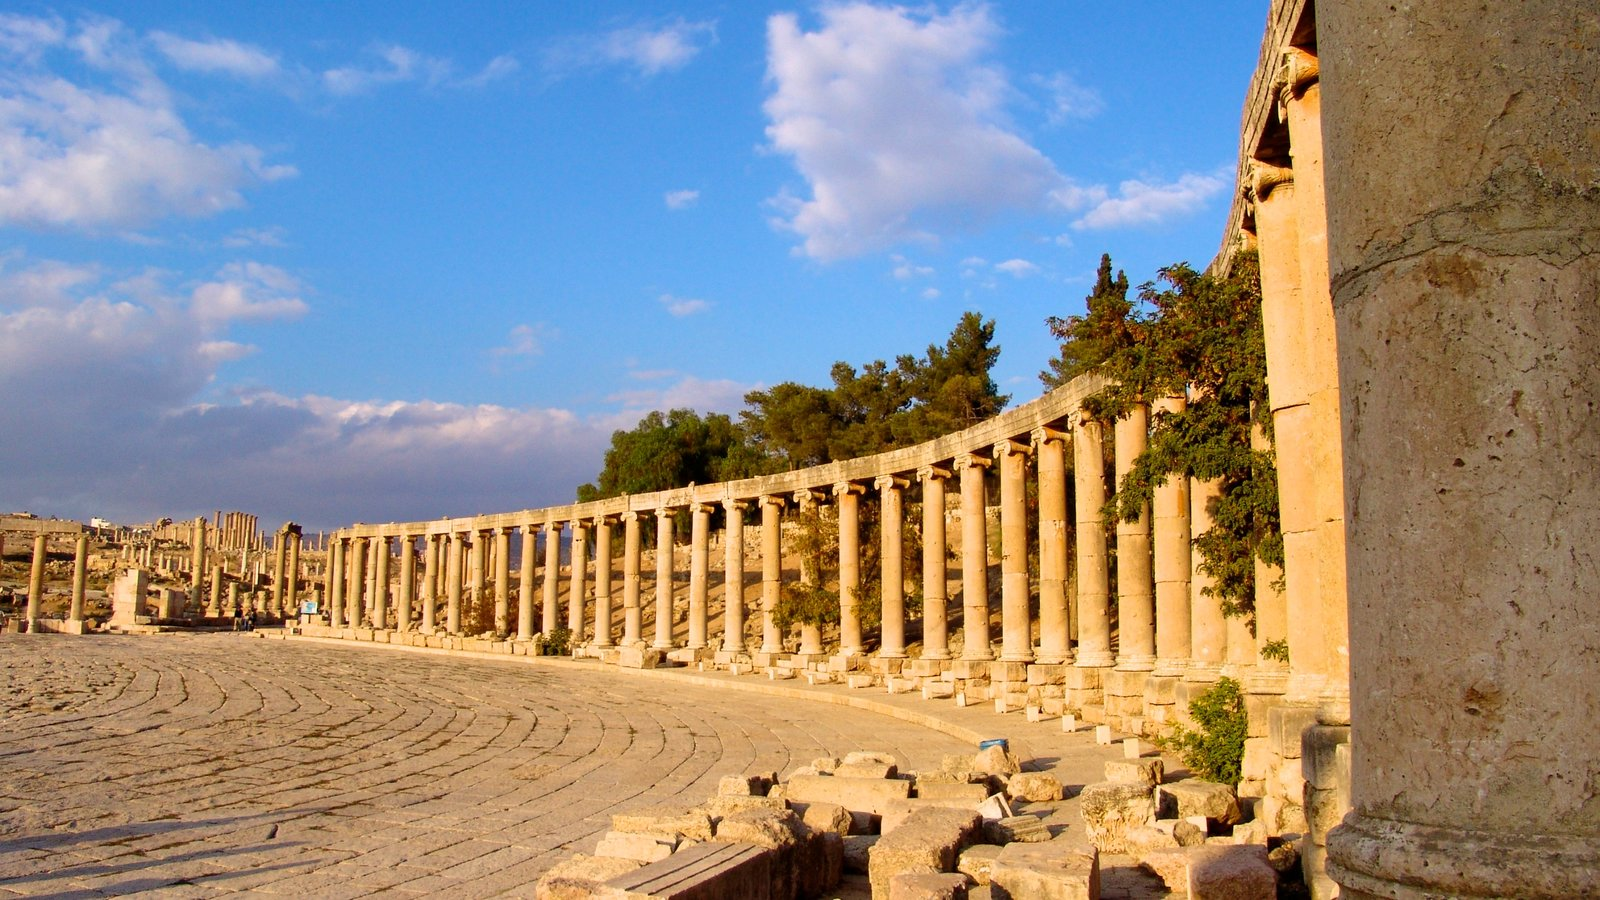 Jerash showing heritage architecture, heritage elements and building ruins